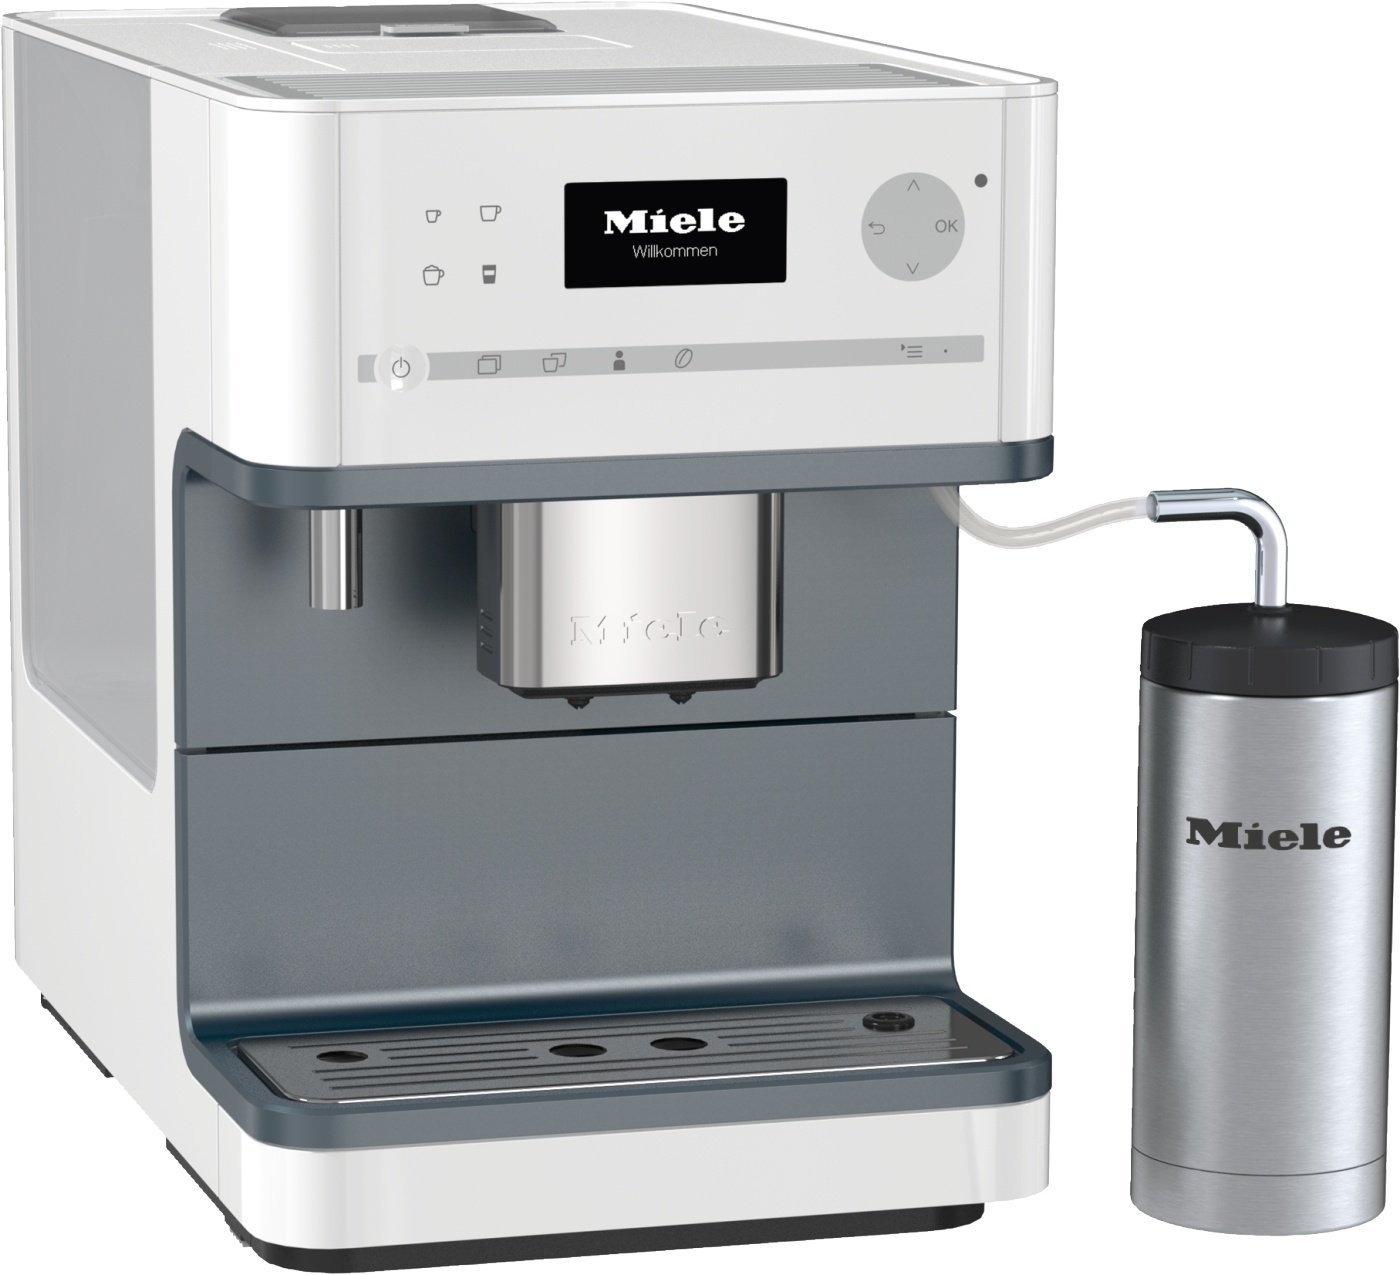 Miele cm 6300 kaffeevollautomat test for Miele vollautomat